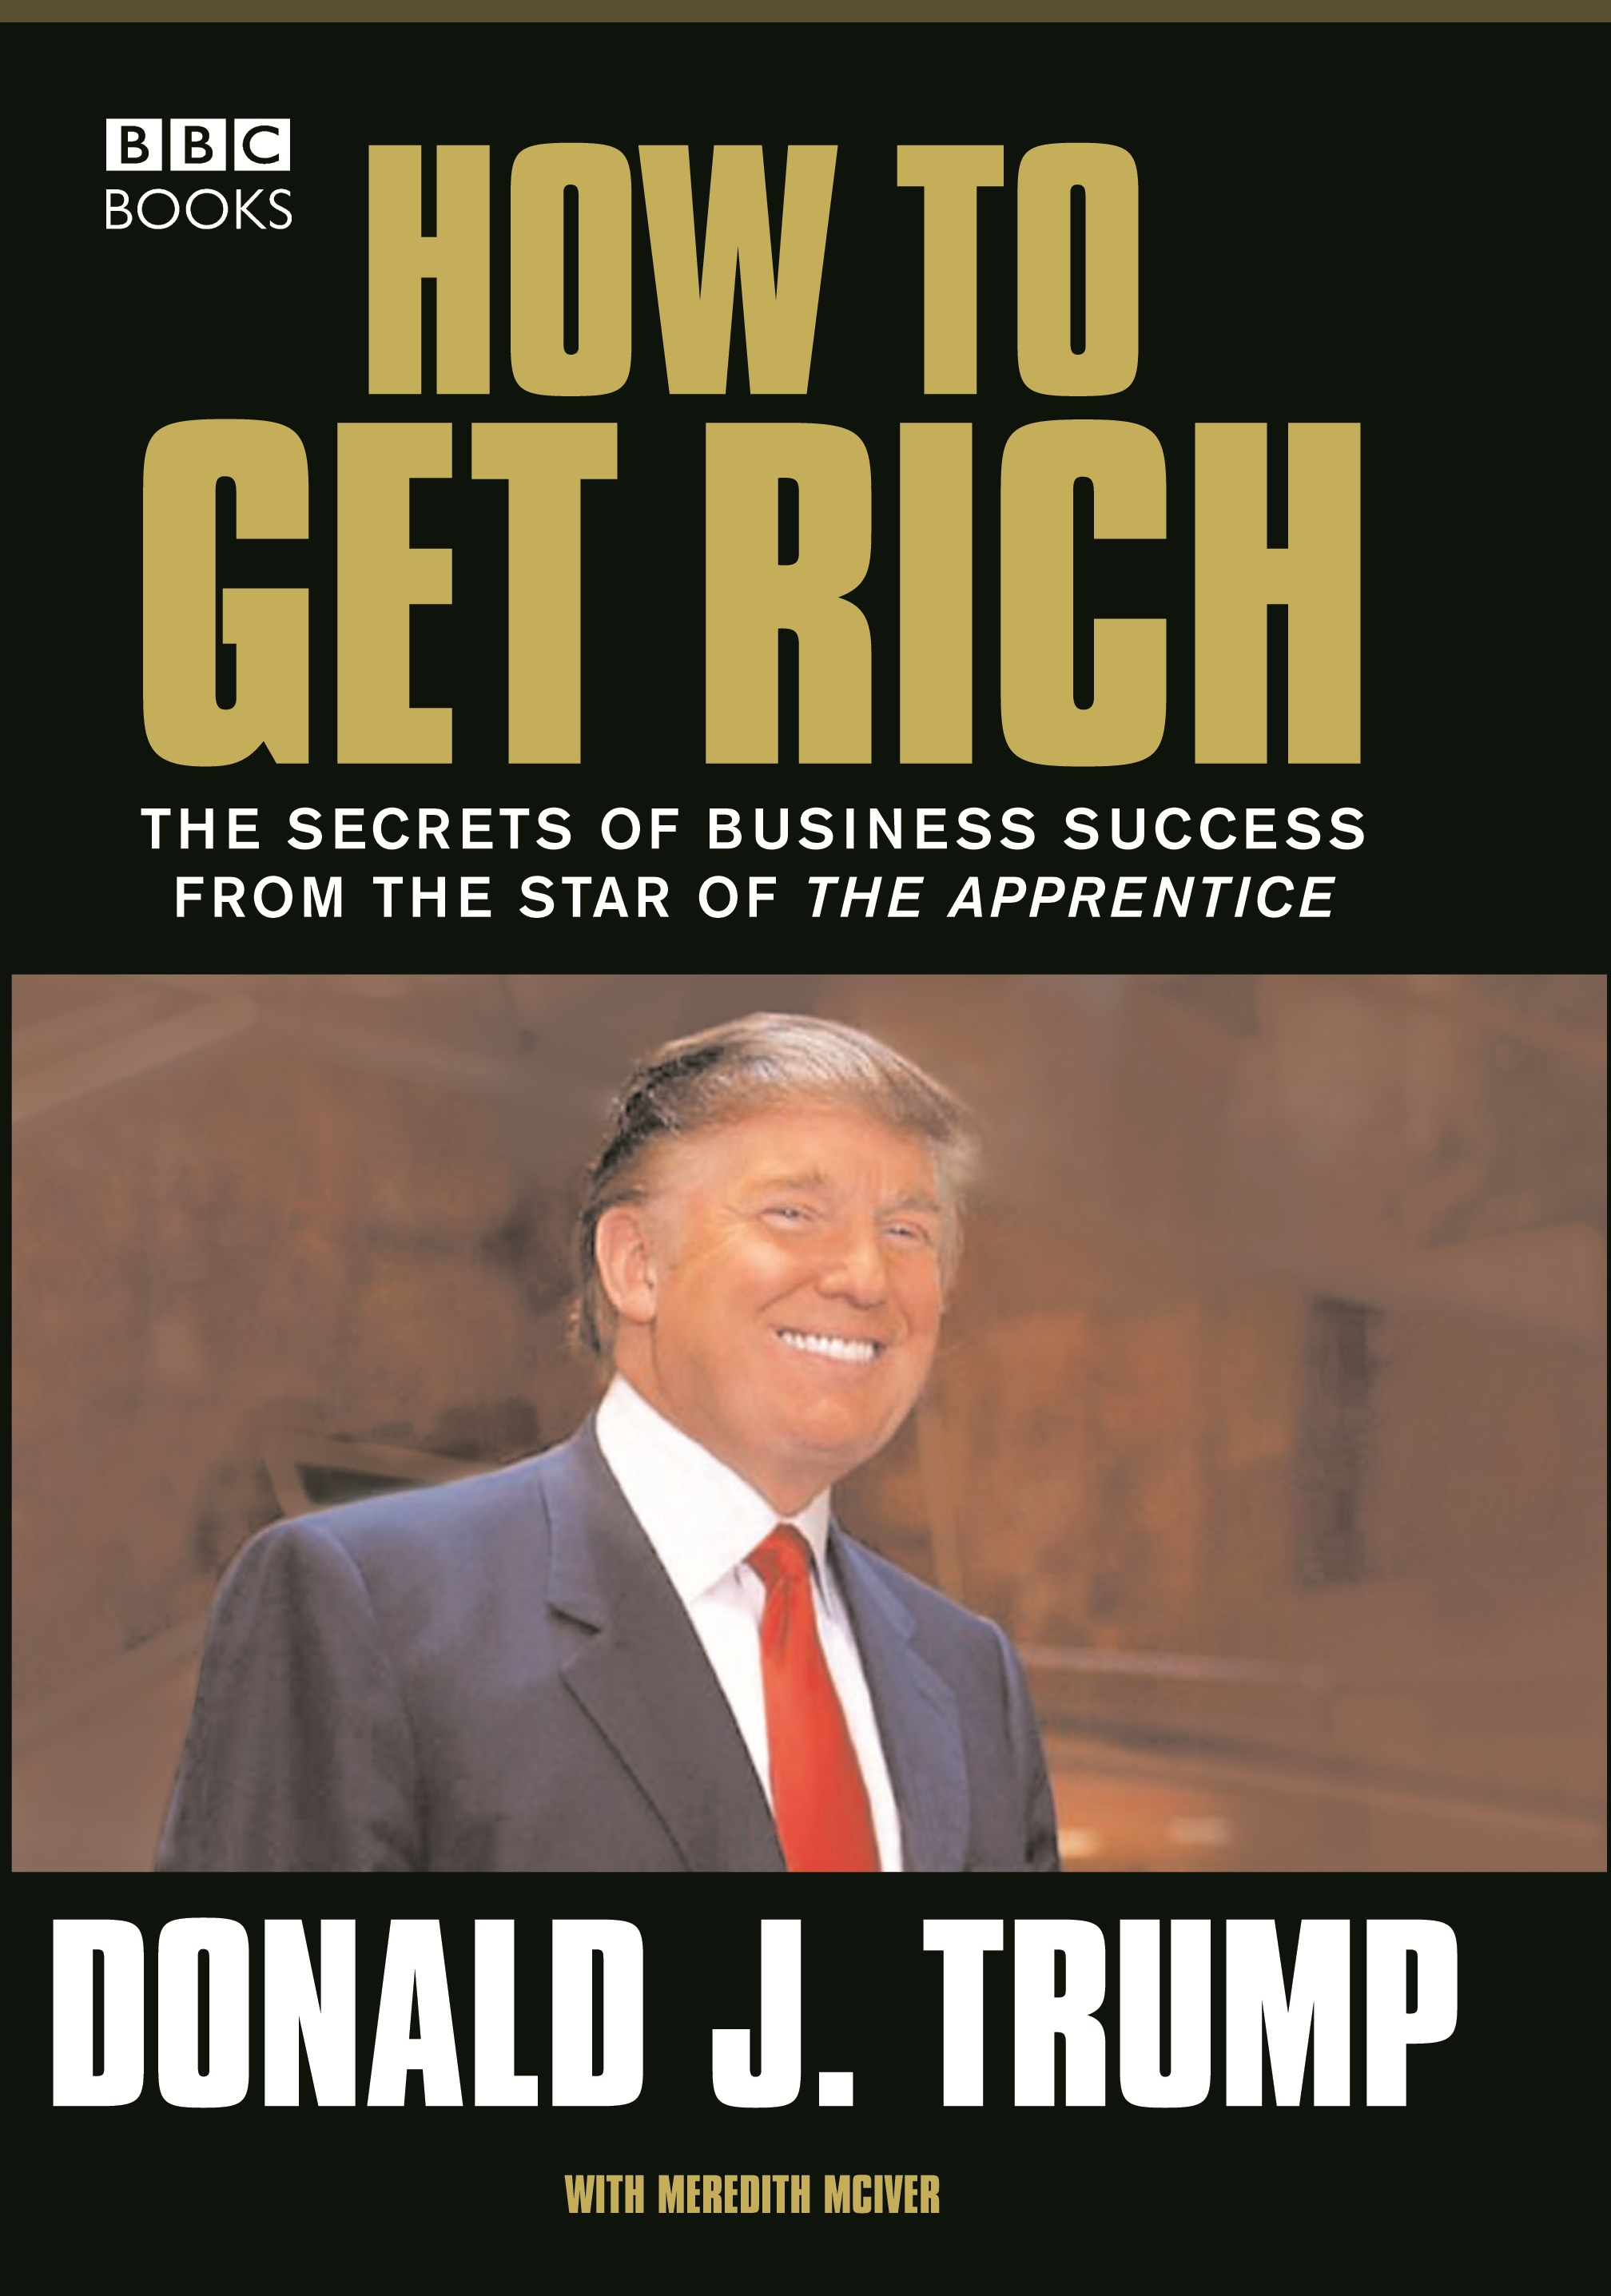 Trump the art of the deal by donald trump penguin books australia also by donald trump fandeluxe Choice Image